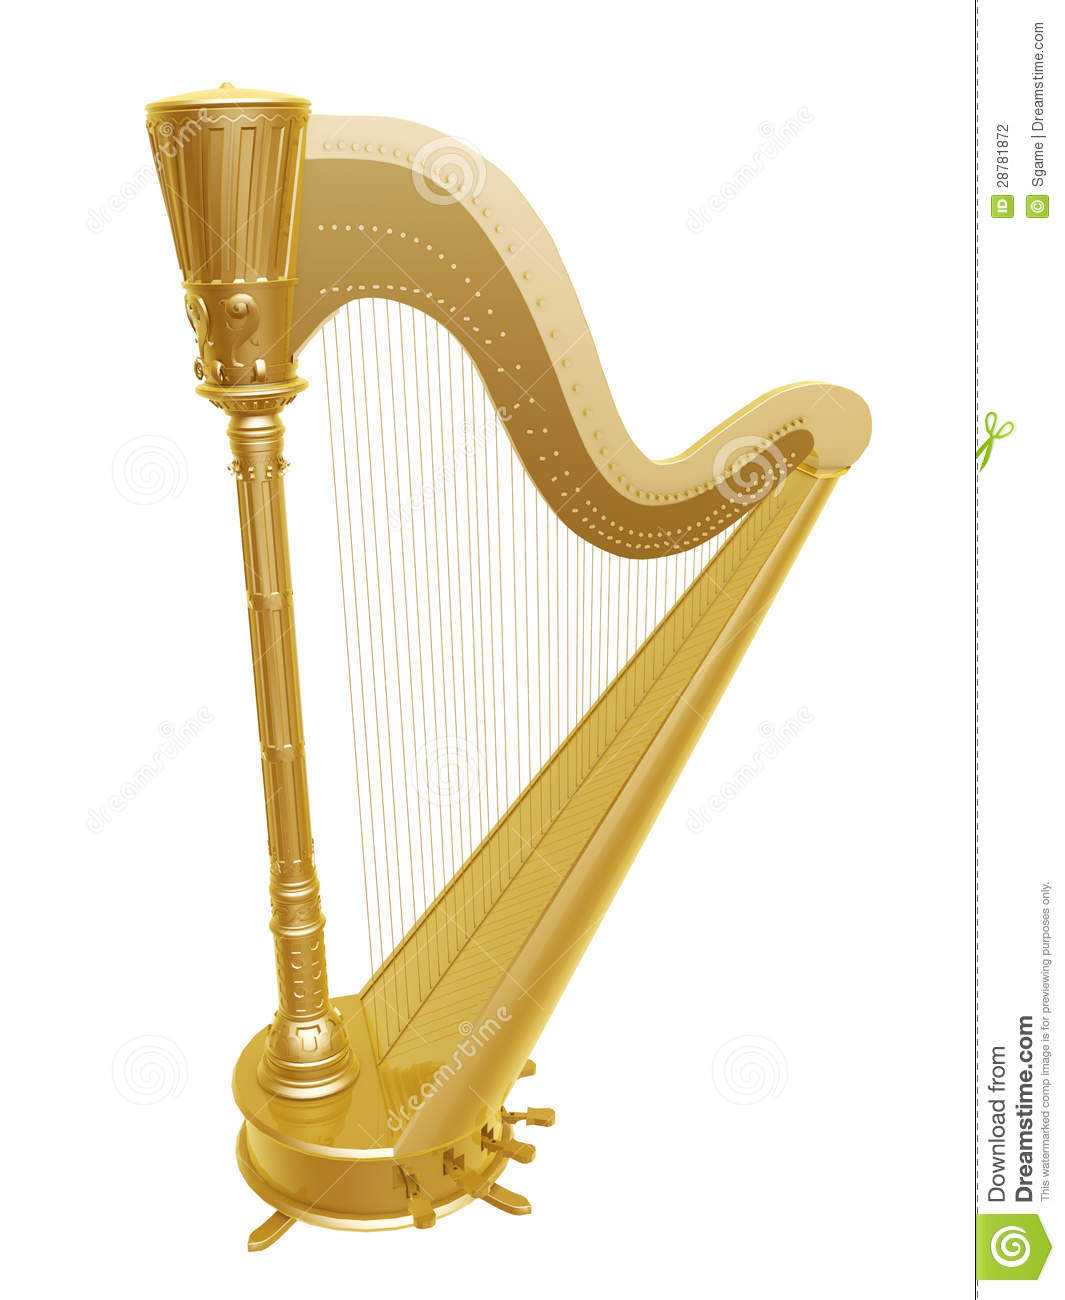 Golden ancient harp isolated on white background.